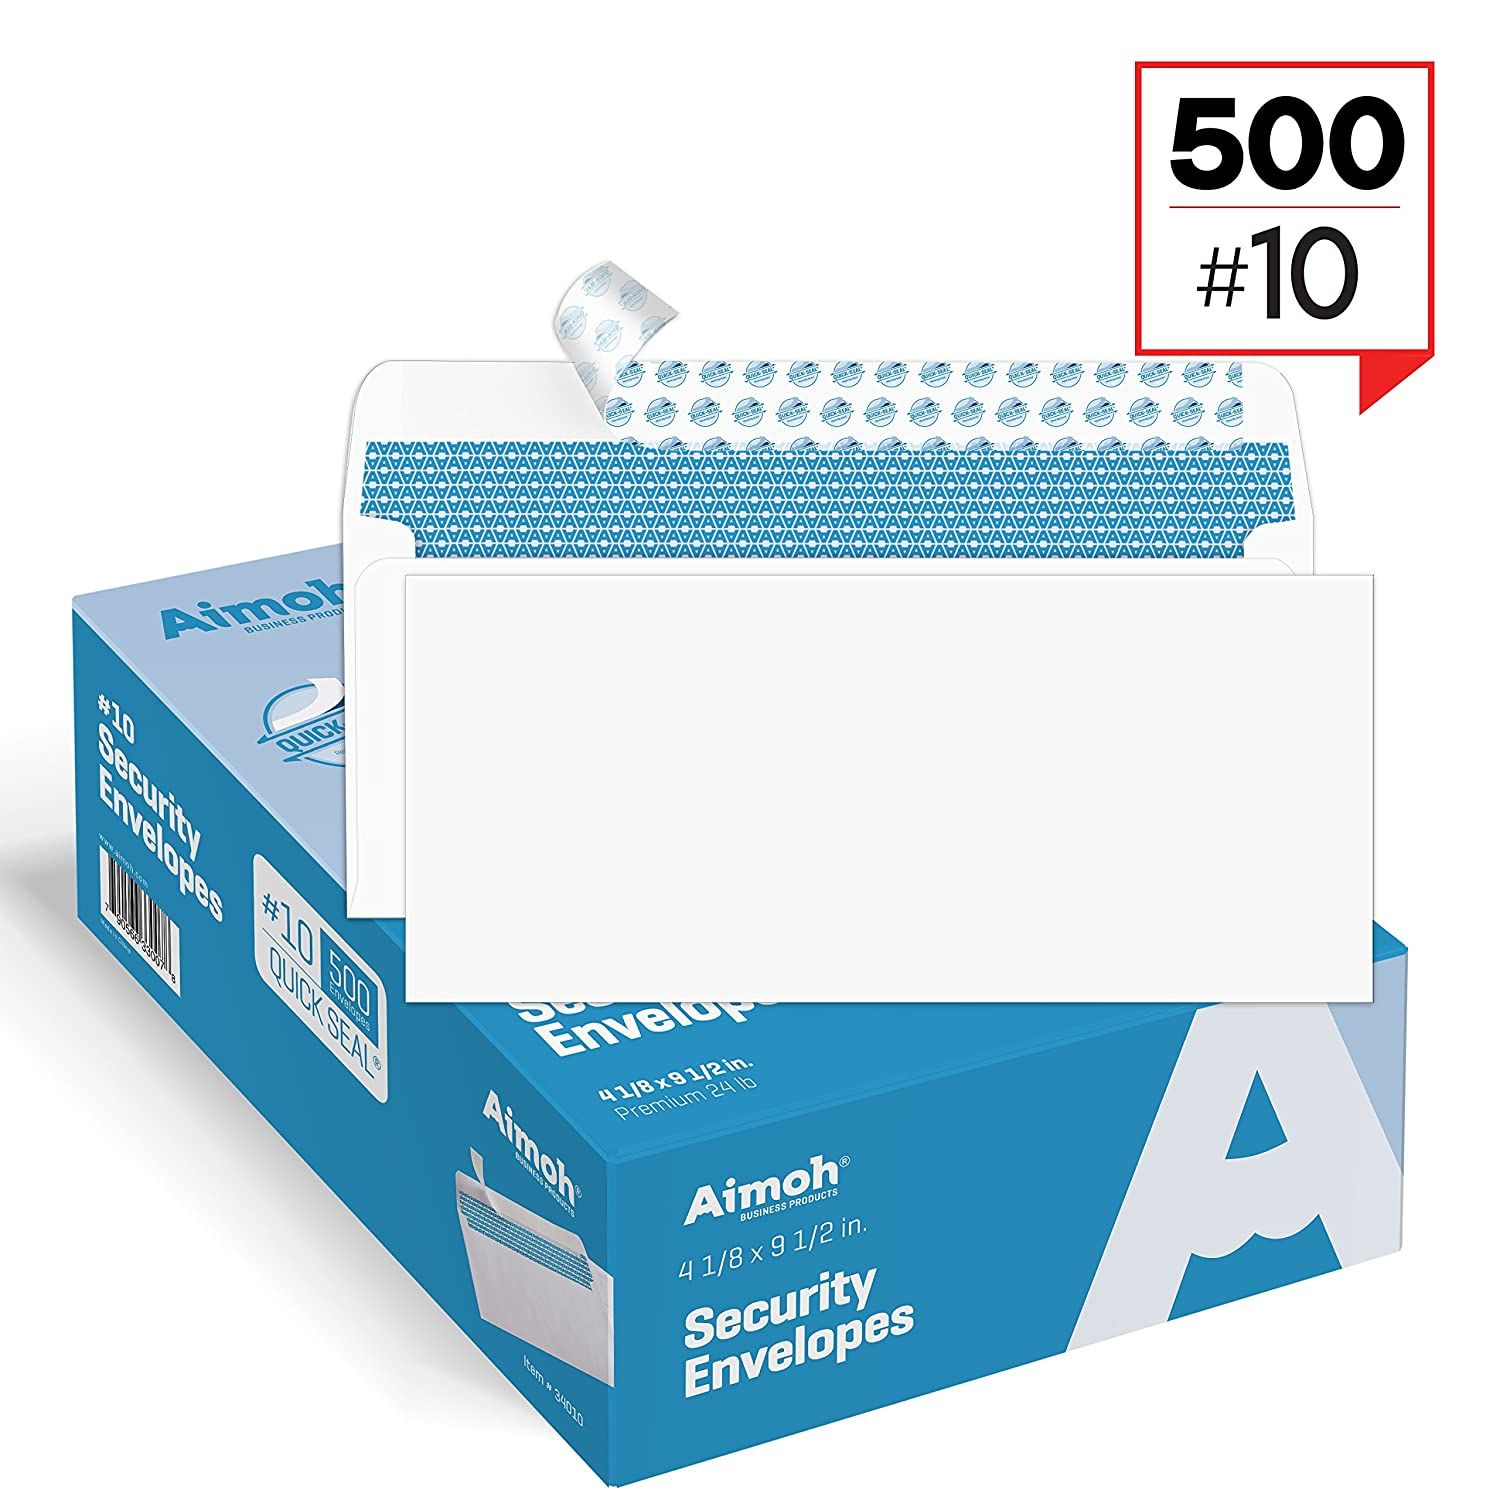 #10 Security SELF-SEAL Envelopes, Windowless Design, Premium Security Tint Pattern for Secure Mailing, Ultra Strong QUICK-SEAL Closure - Size 4-1/8 x 9-1/2 Inches - White - 24 LB - 500 Count (34010) Aimoh 34010-500